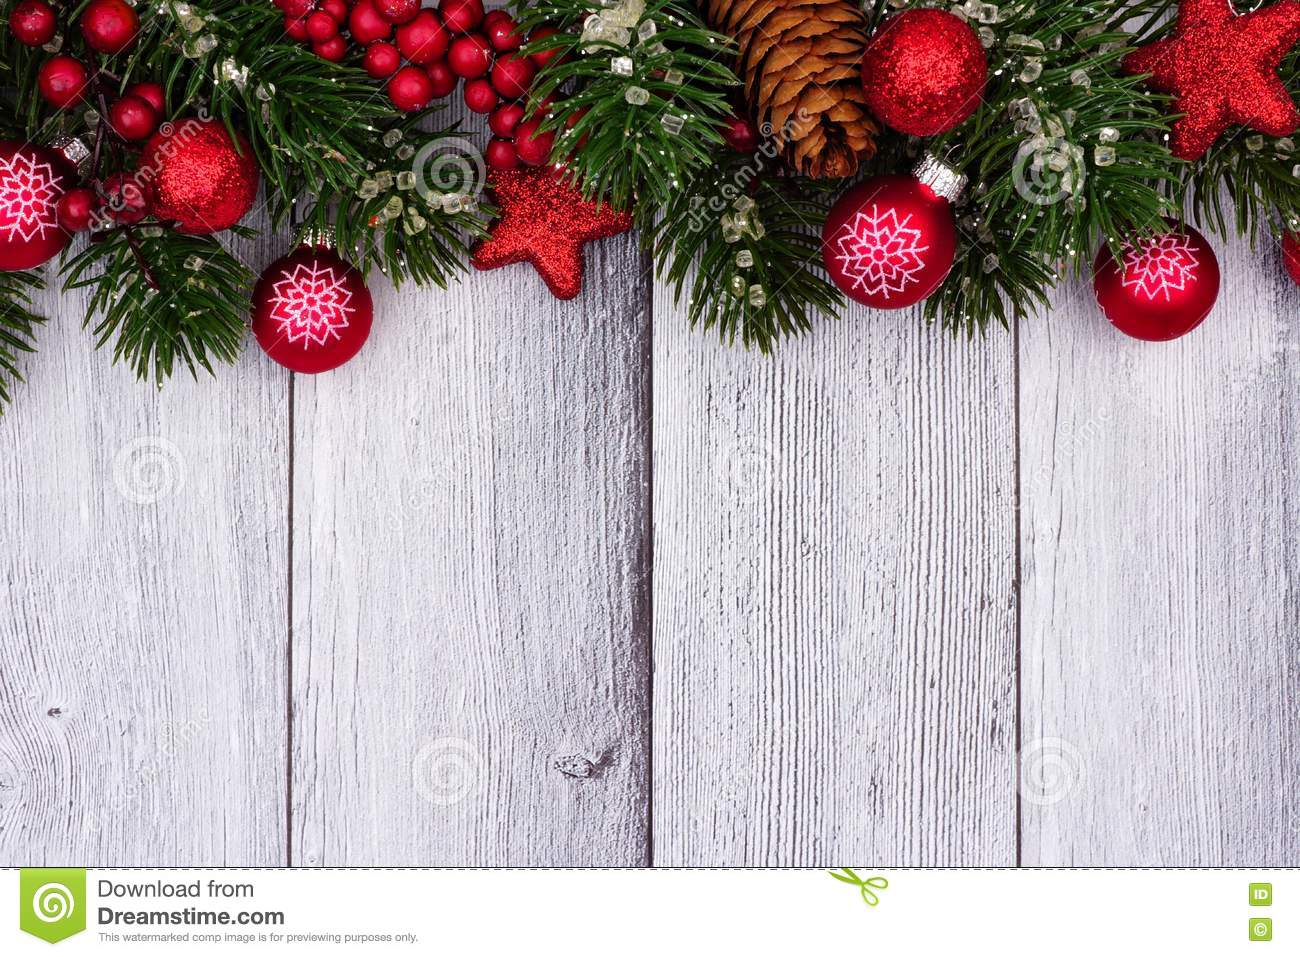 Download Red Christmas Ornaments And Branches Top Border On White Wood Stock Photo